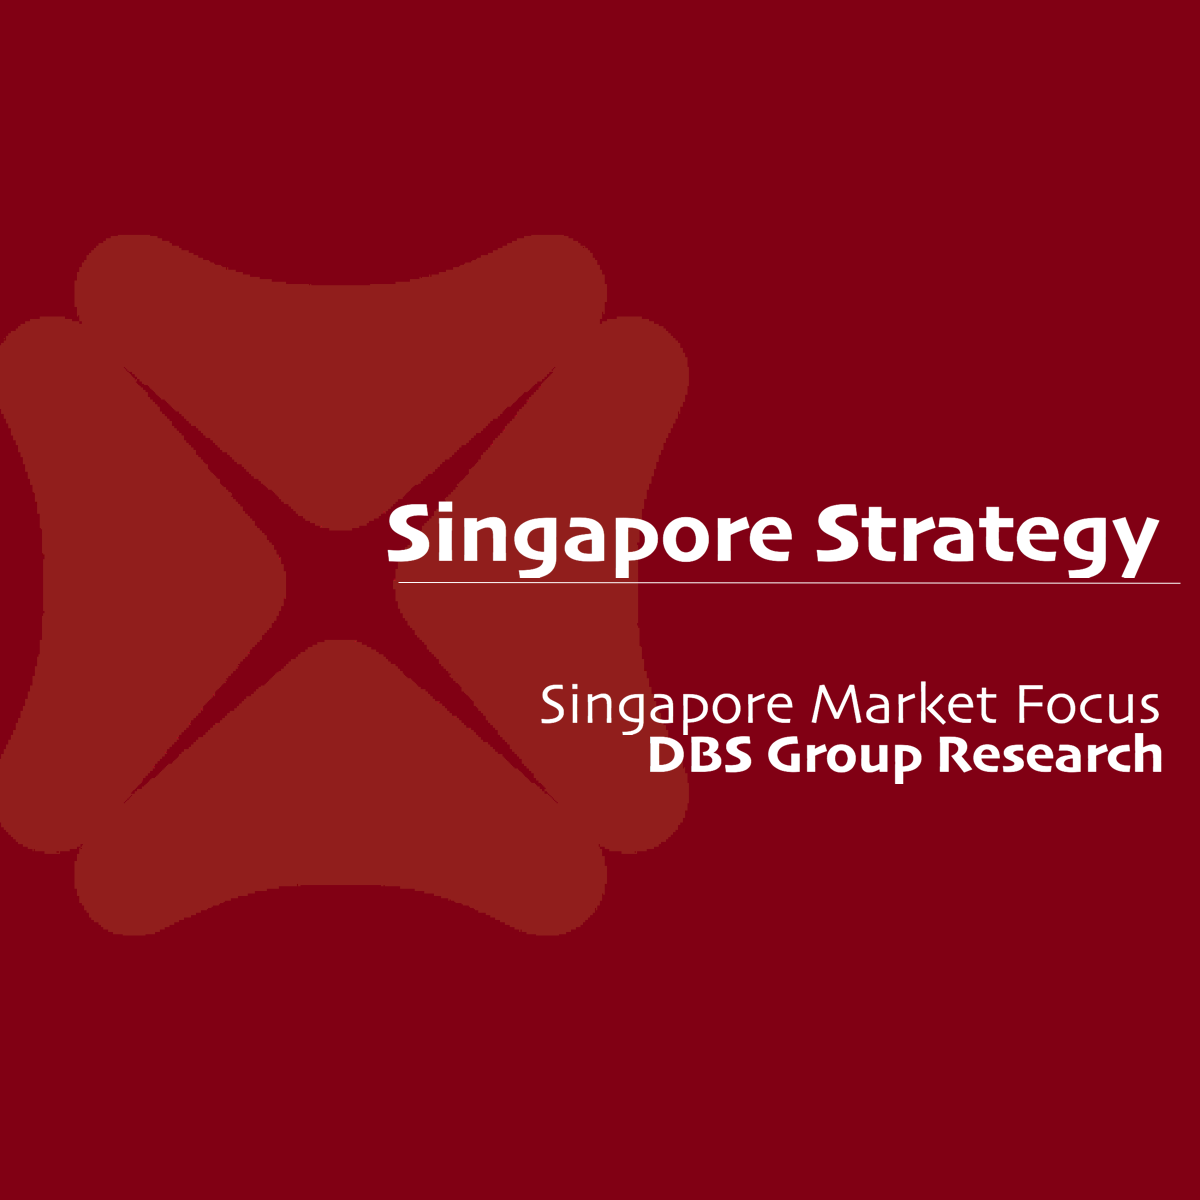 Asia Equity Strategy - DBS Vickers 2017-06-12: Calculating The Risks